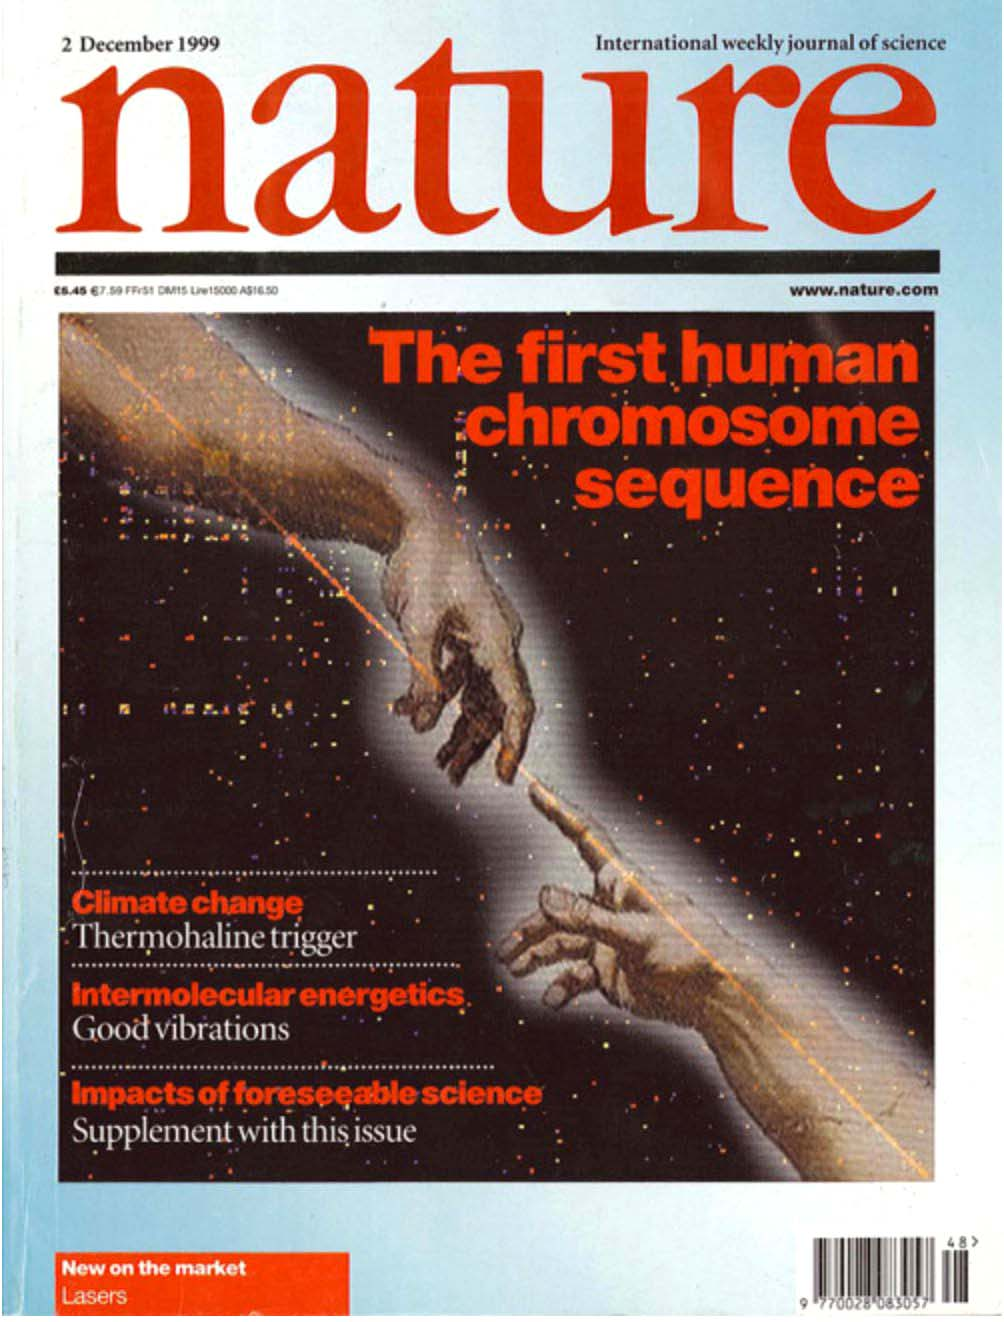 """Journal cover featuring an image of two hands pointing at each other and almost touching, with the text: """"Nature"""" and """"the first human chromosome sequence"""""""